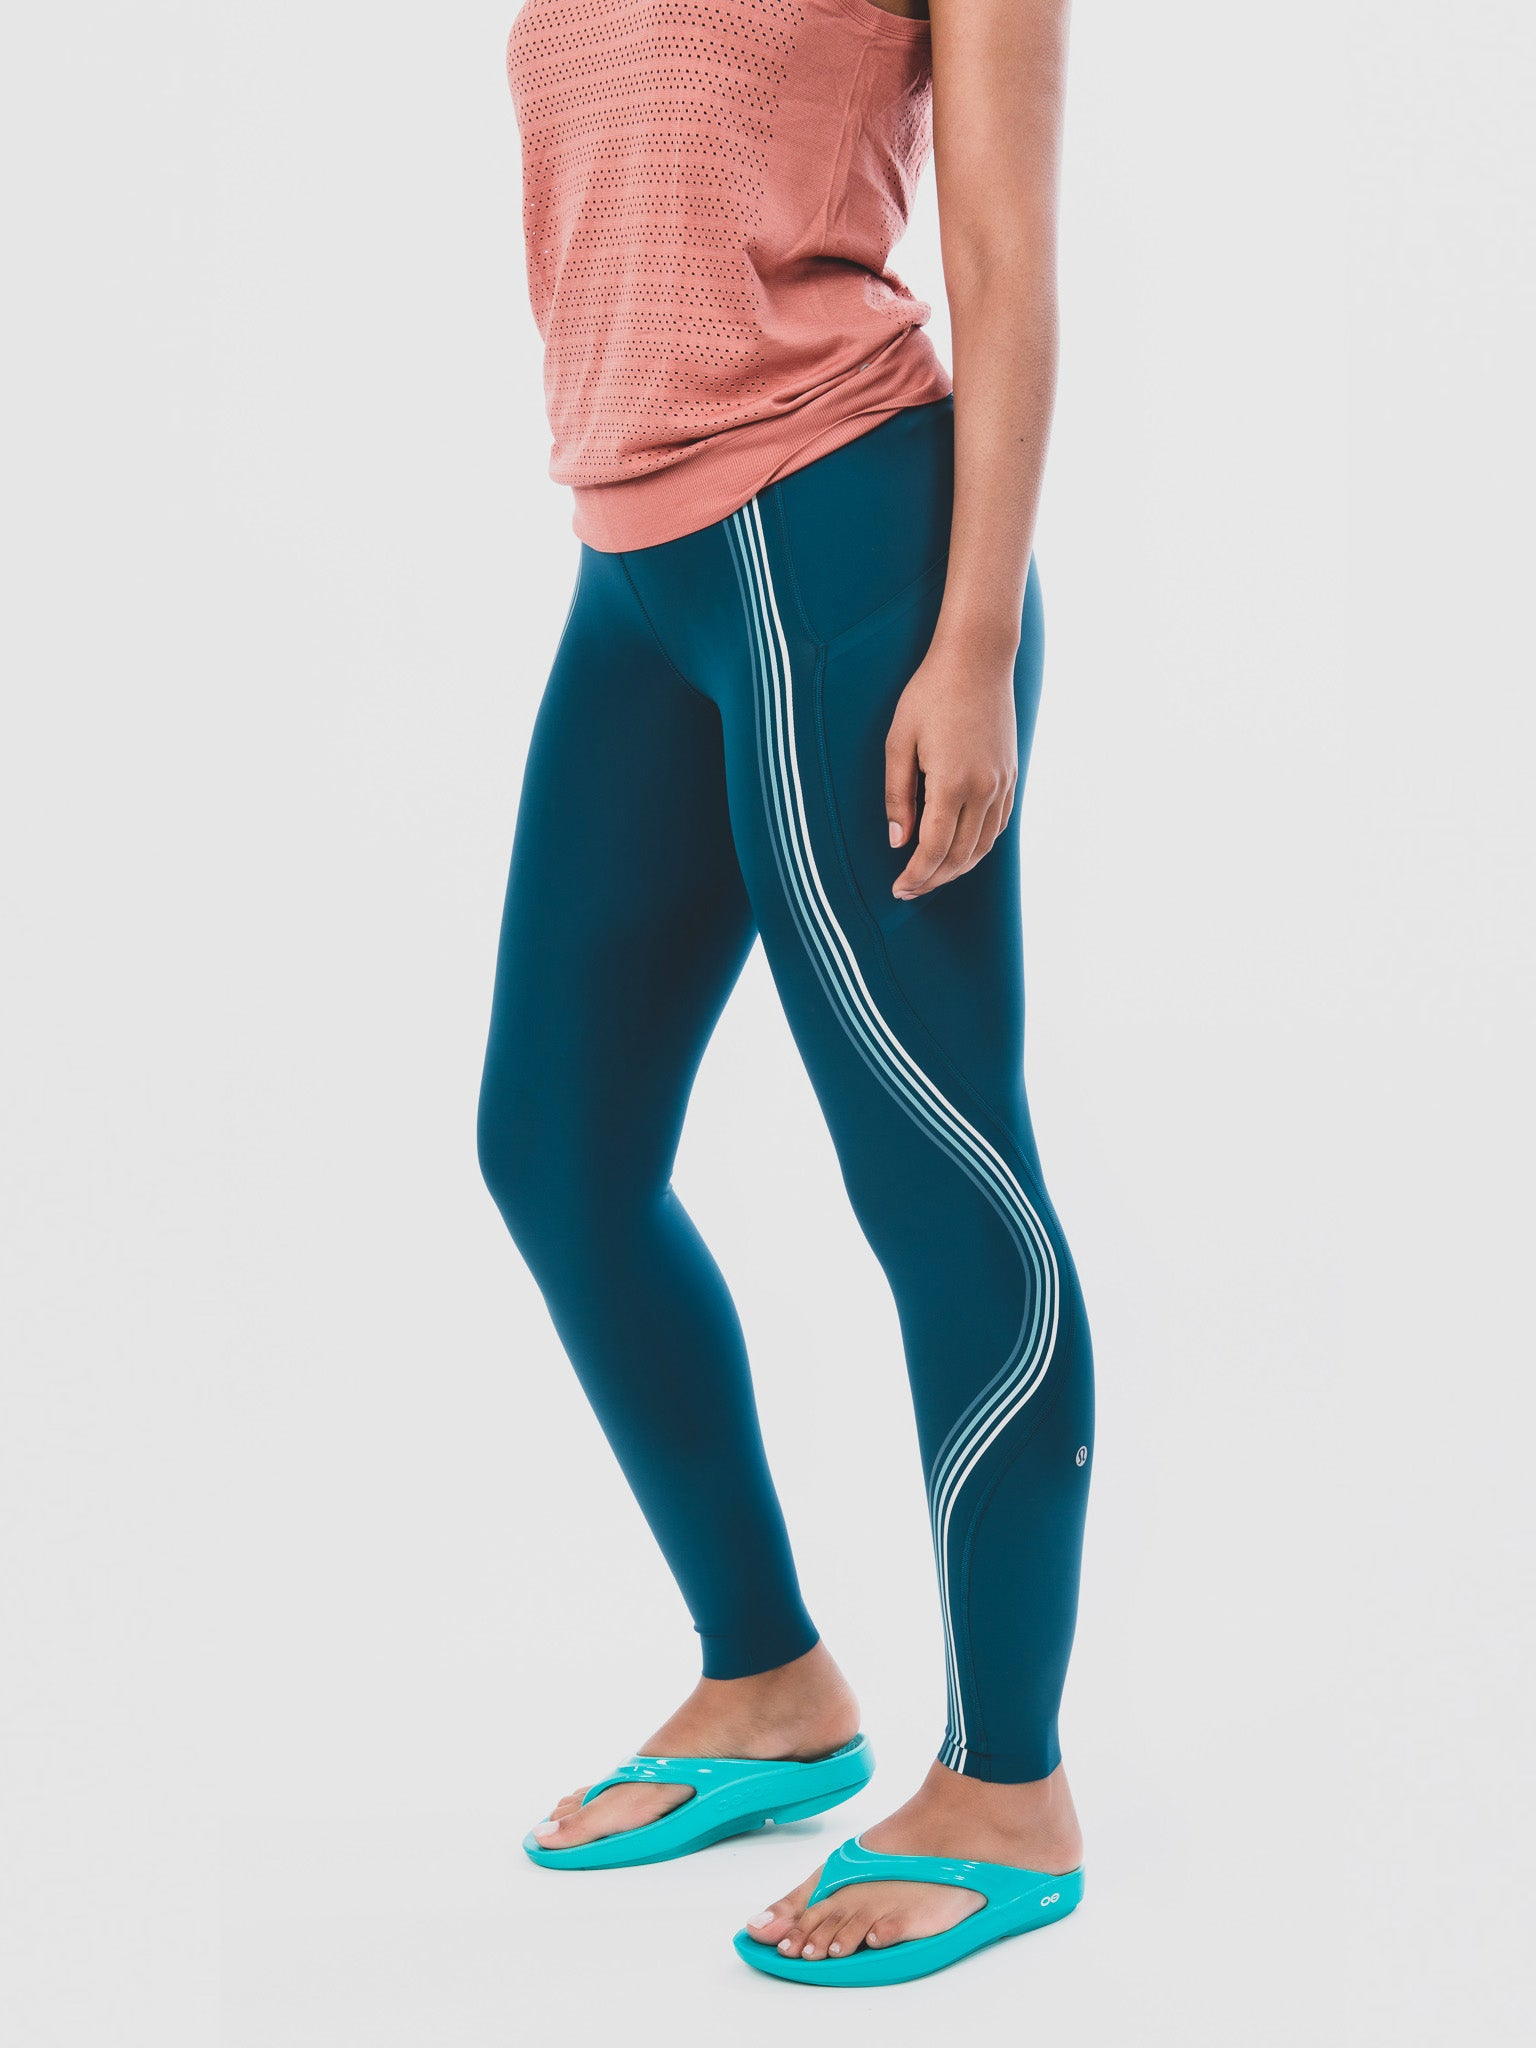 Women's OOlala Teal Knee Down